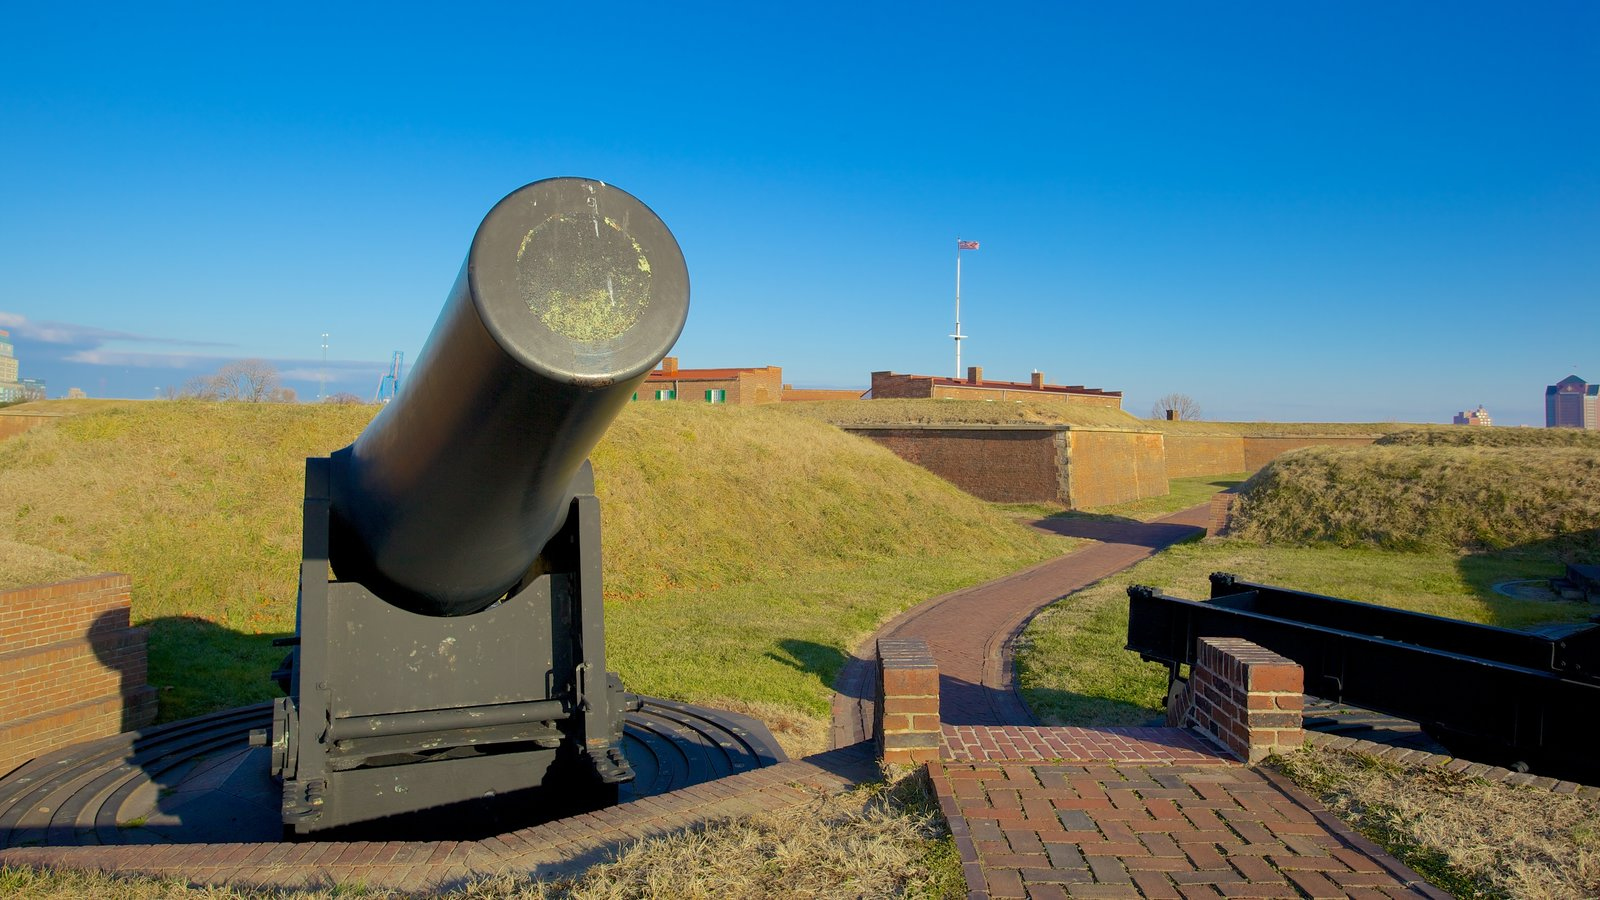 Fort McHenry featuring military items and a monument